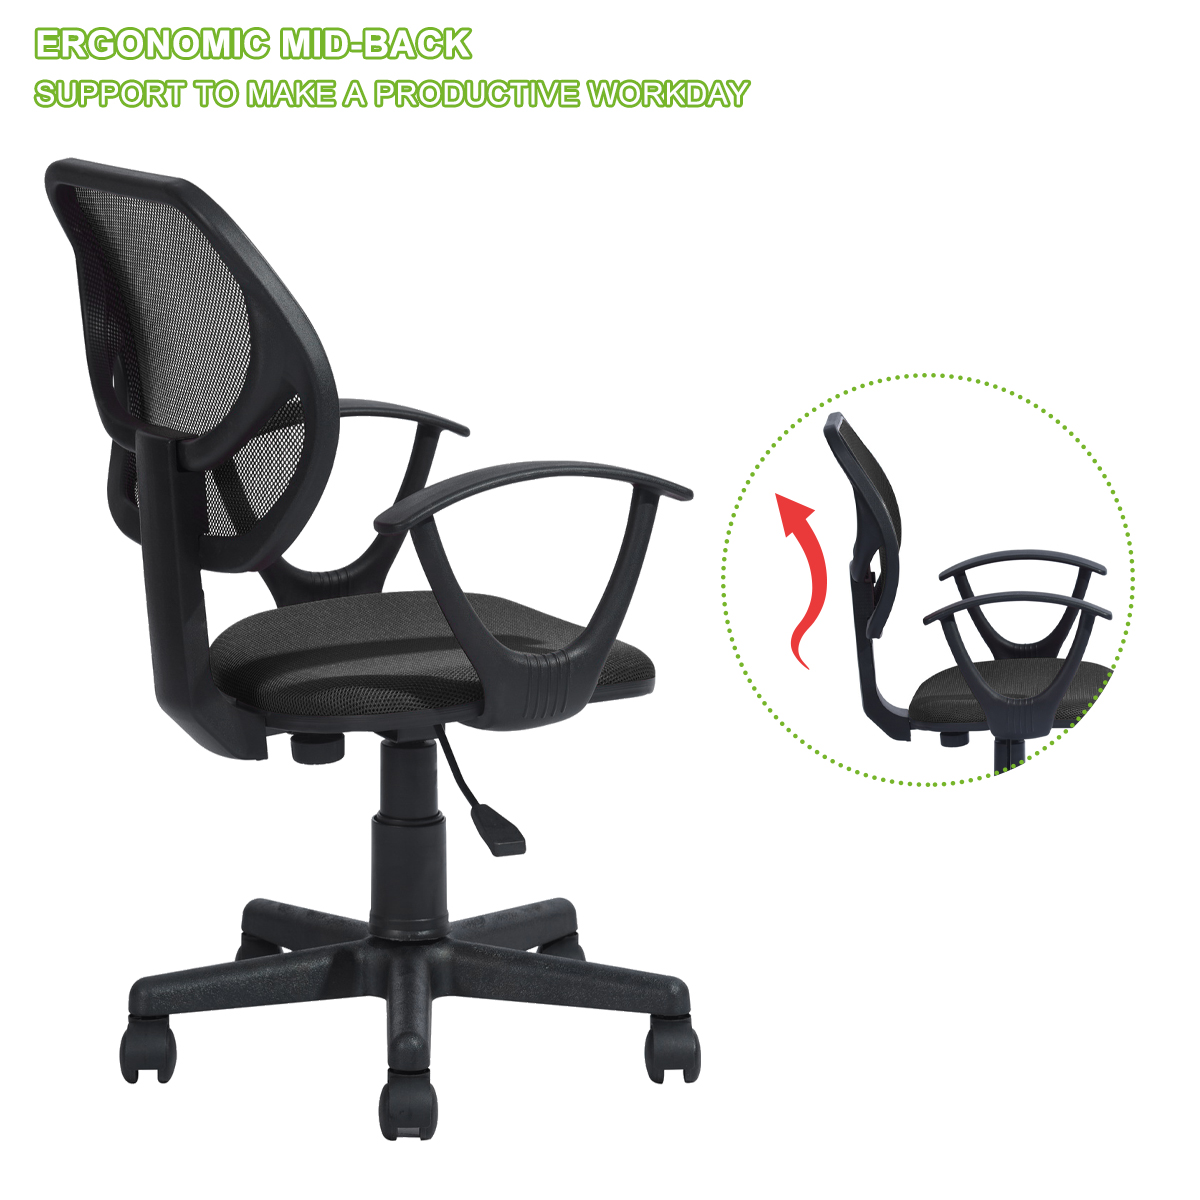 Details about Mesh Mid-Back Office Chair Executive Computer Ergonomic Desk  Seat Swivel